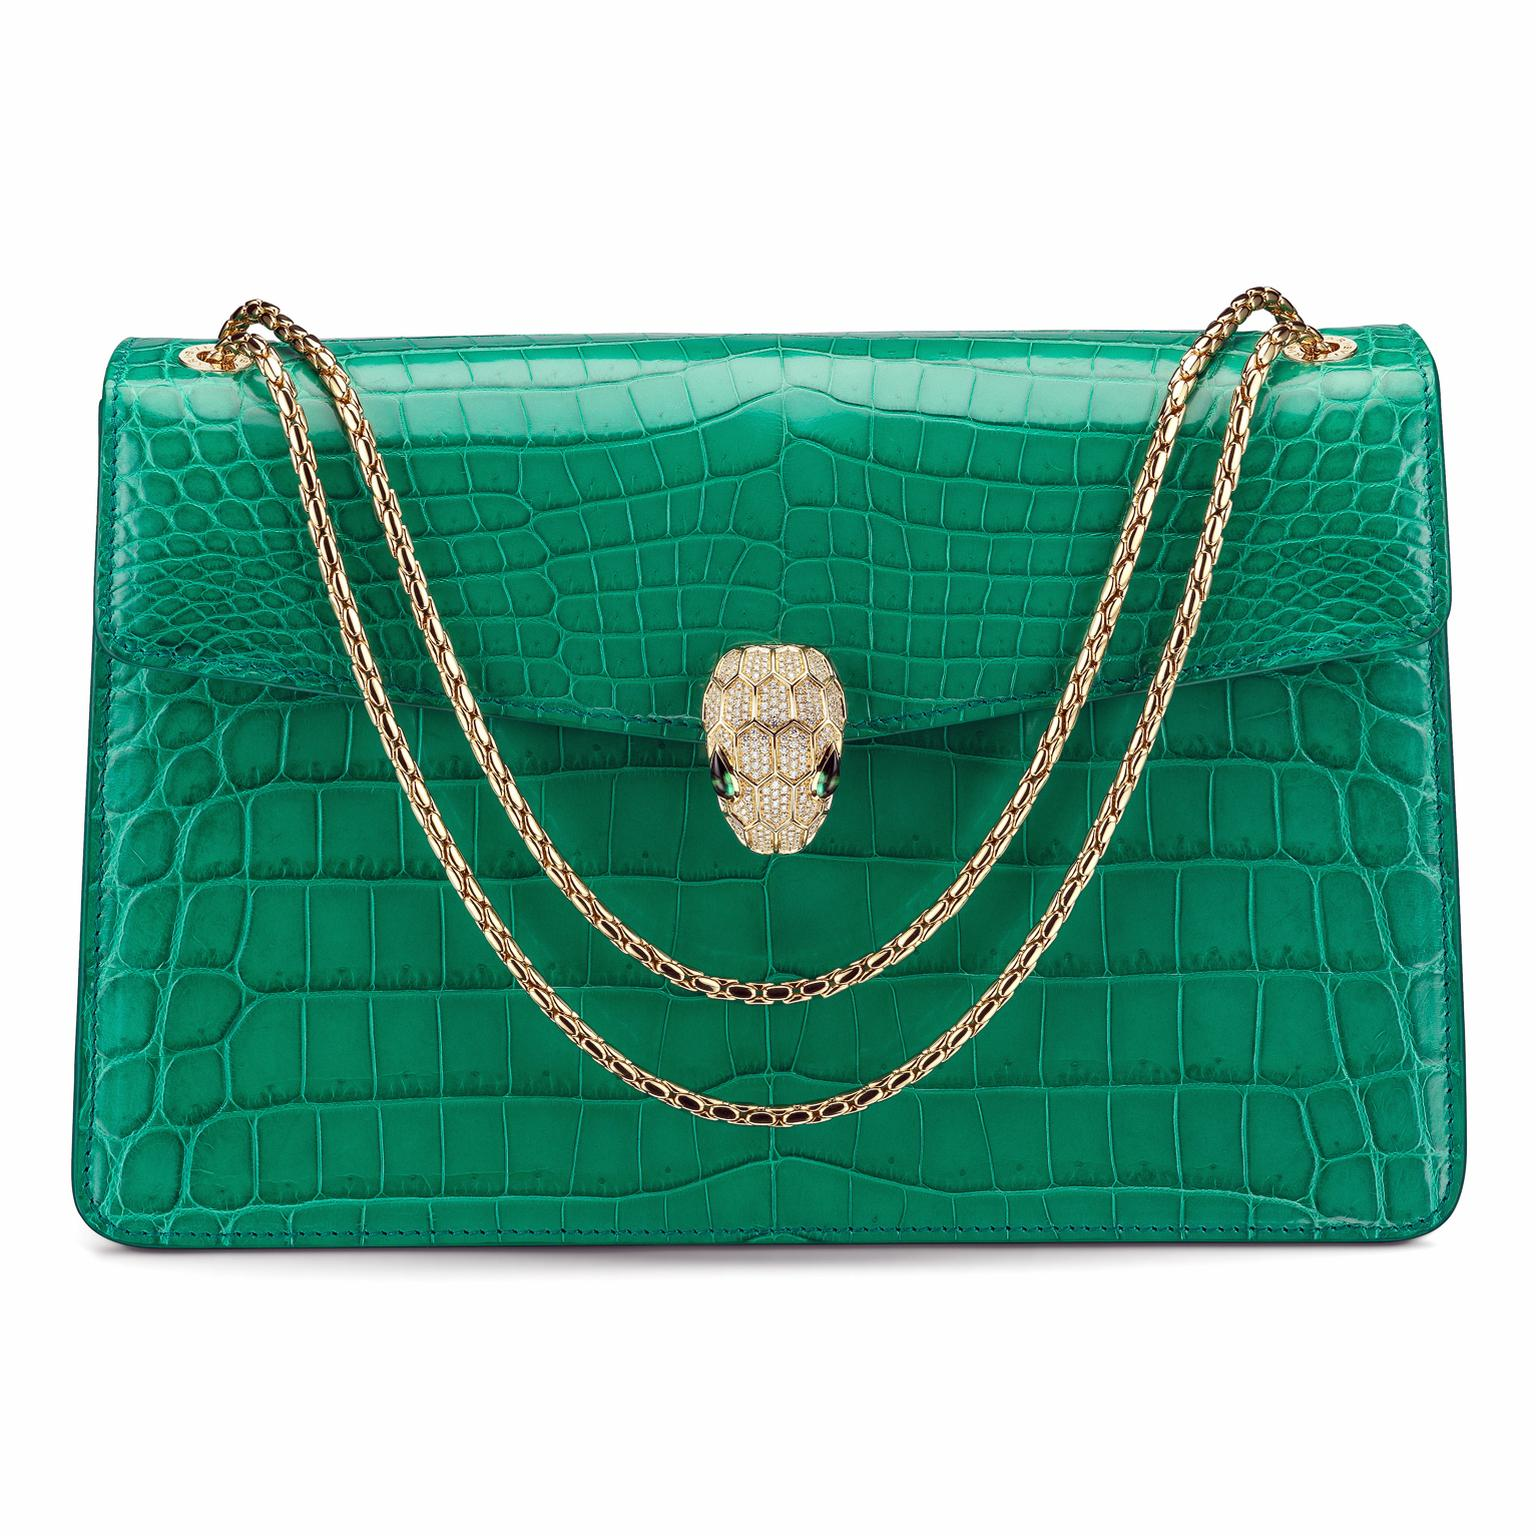 Bulgari Serpenti Forever emerald green crocodile skin handbag